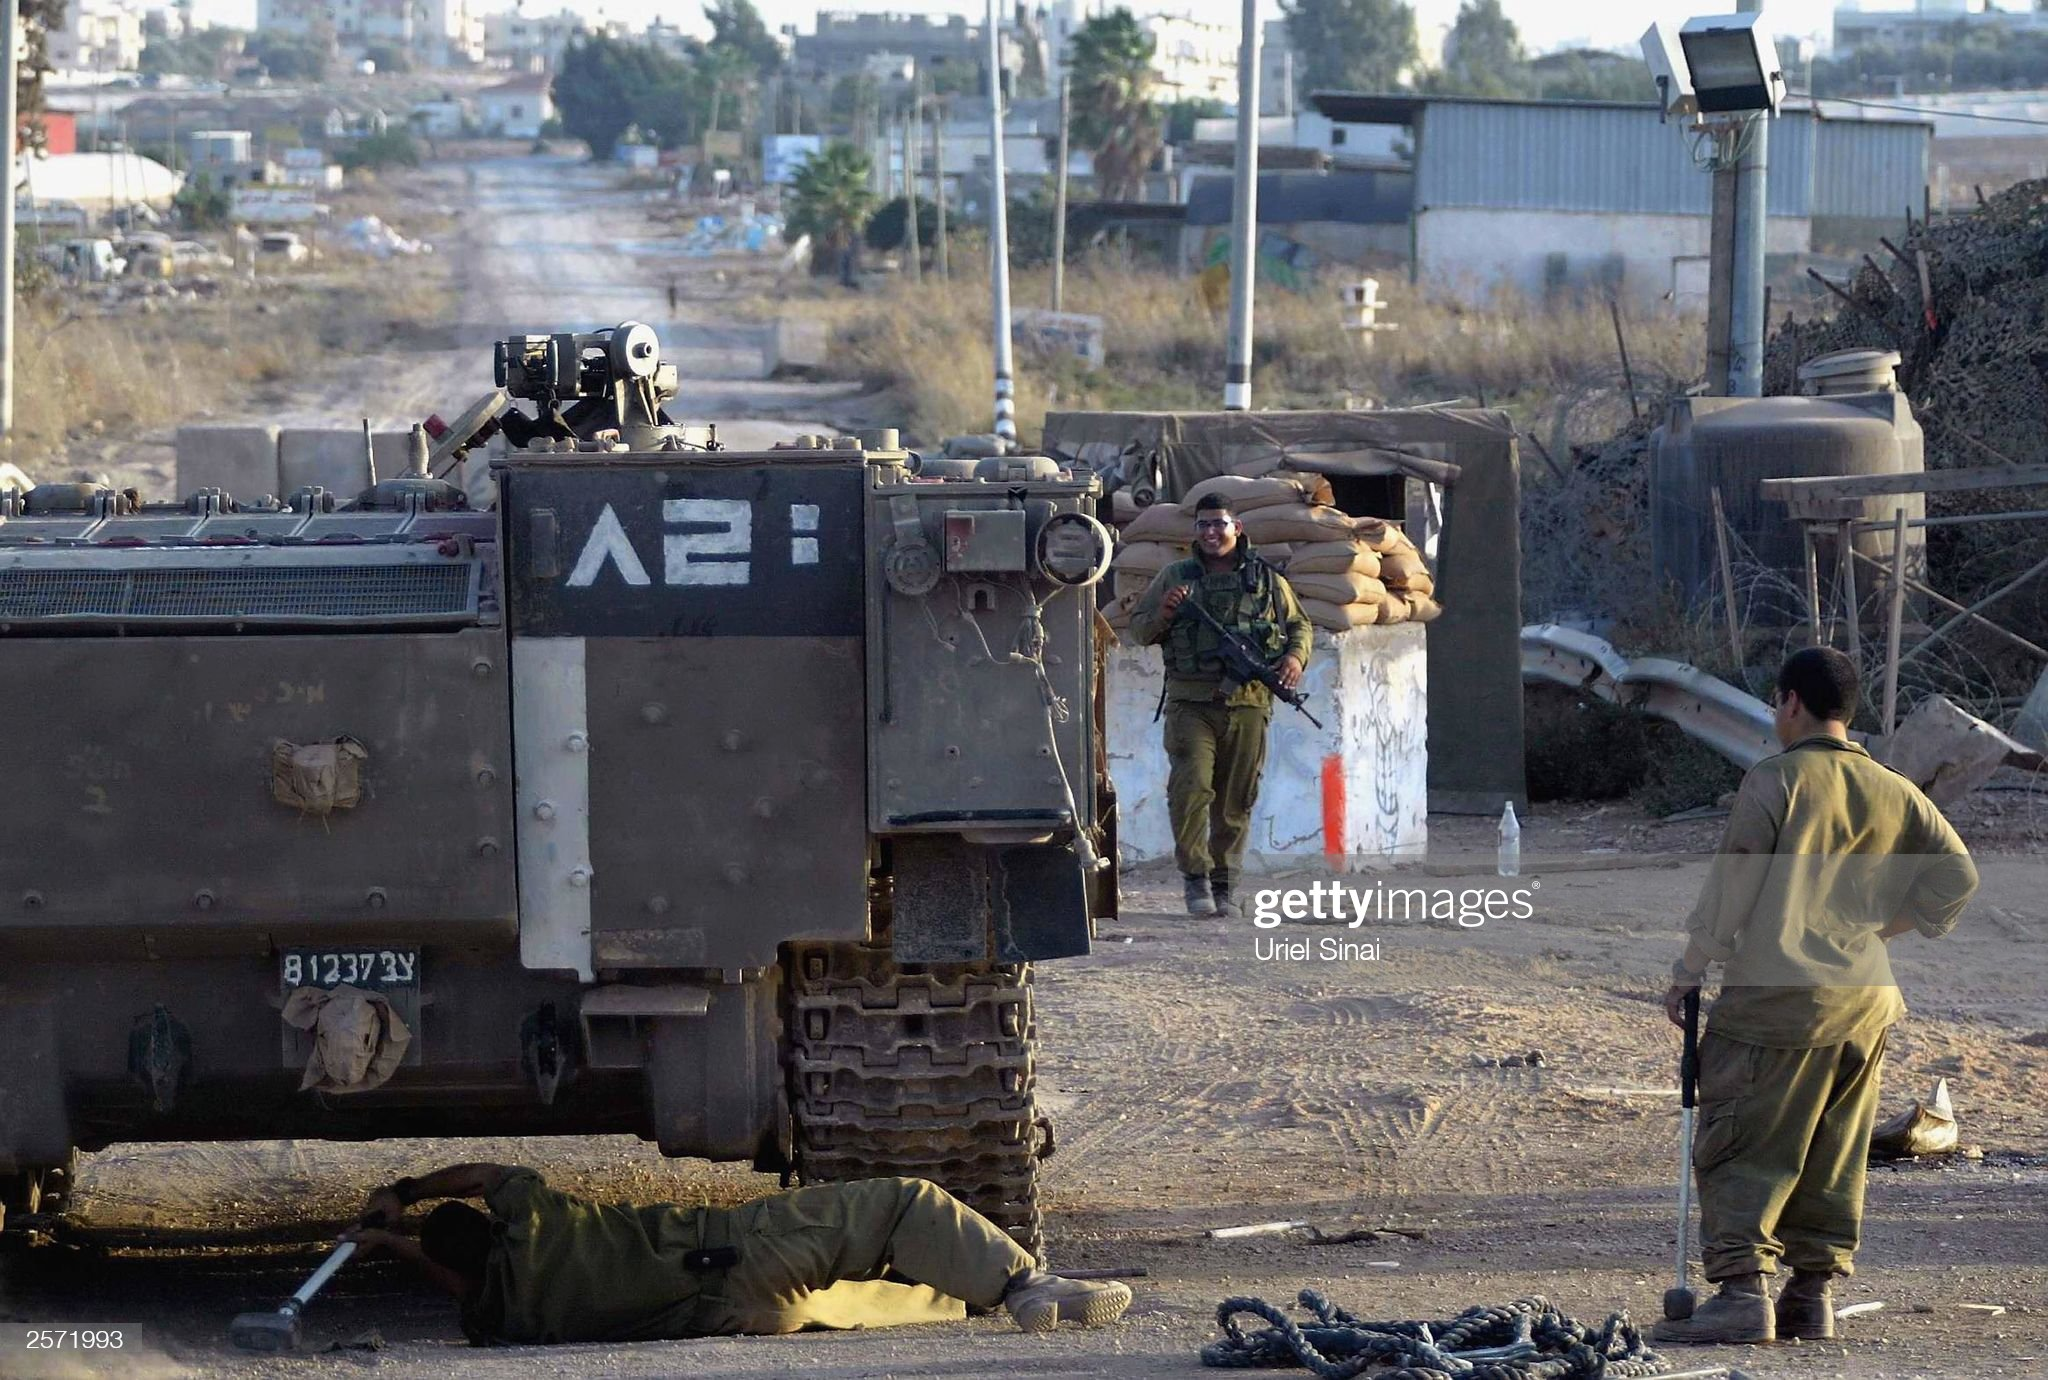 israeli-soldiers-repair-a-tank-on-october-8-2003-in-an-outpost-next-picture-id2571993?s=2048x2048